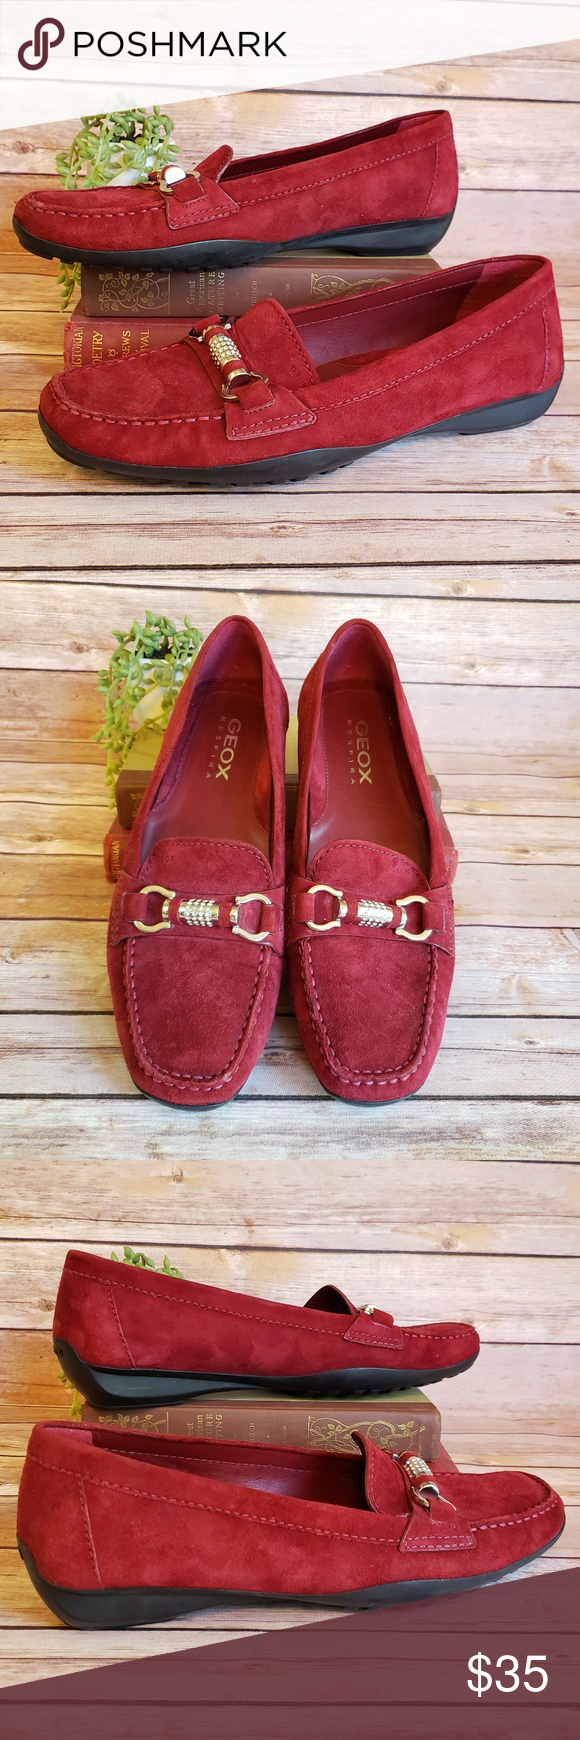 Apellido Están familiarizados Regresa  Geox Red Suede Driving Loafers Size 40/10 EUC | Red suede, Driving loafers,  Geox